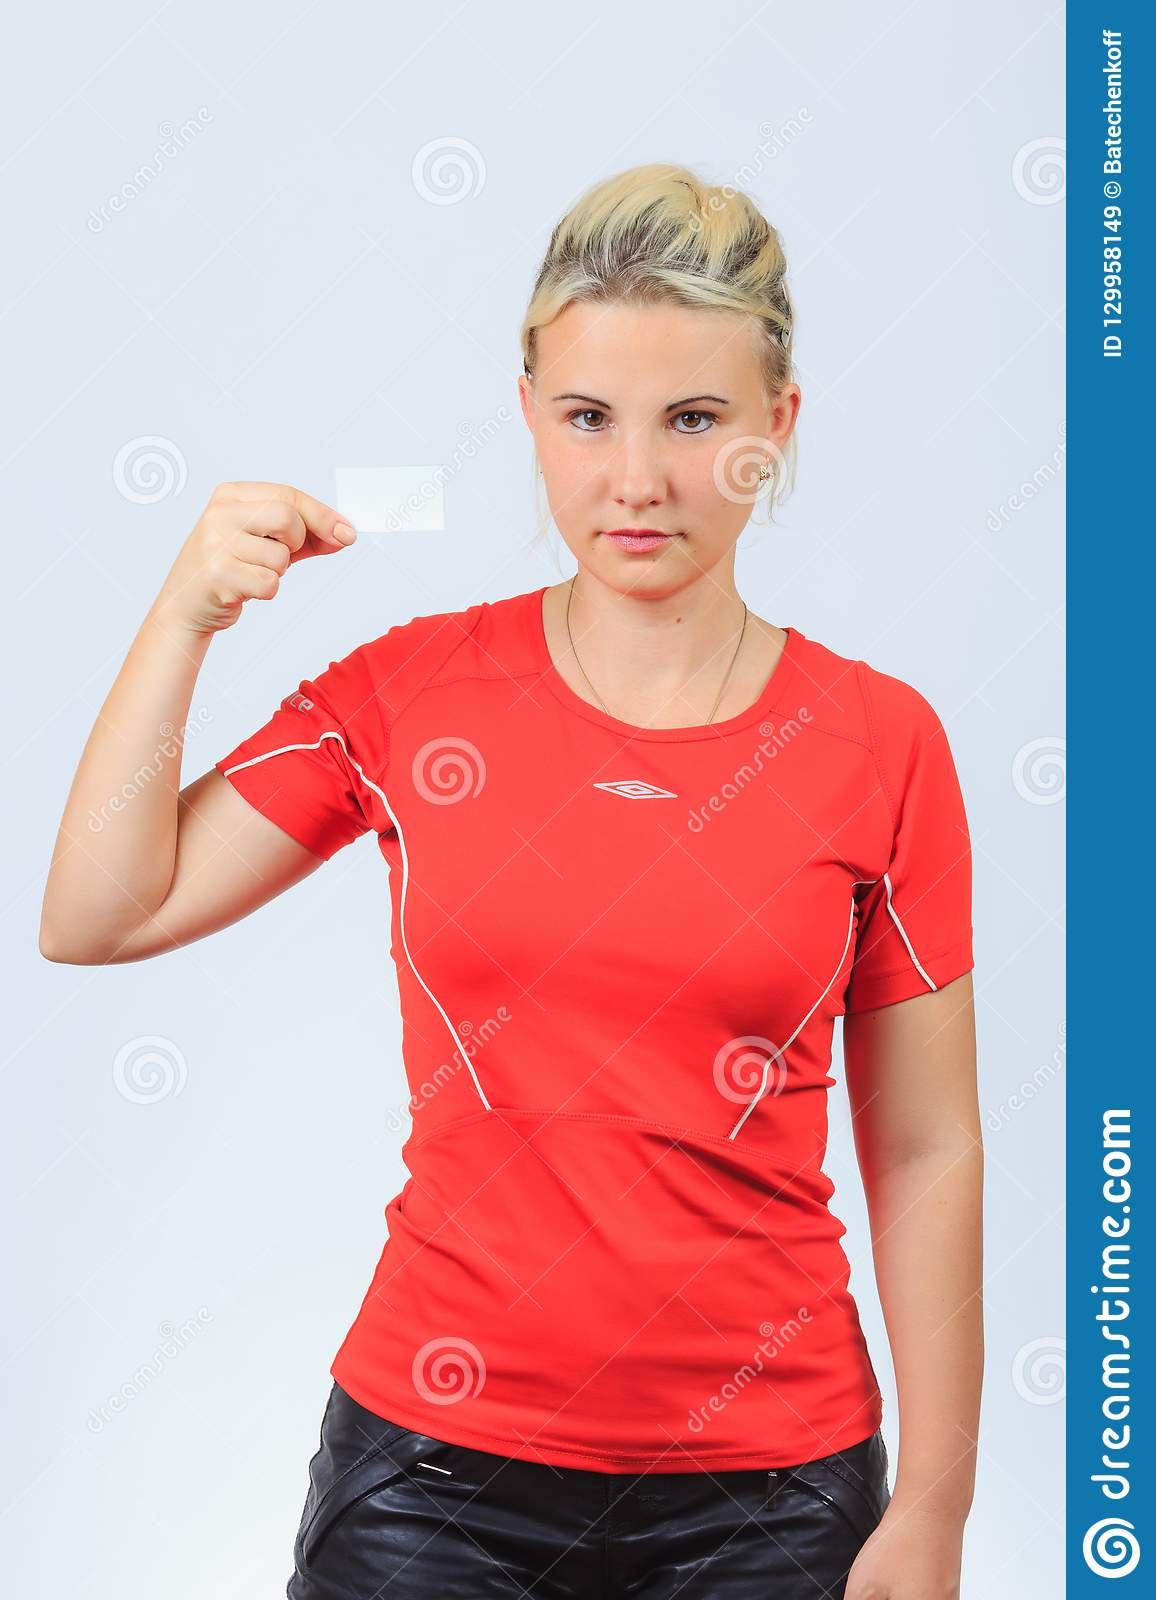 b7ca8b4d Young serious blonde girl in red shirt and black shorts holds blank  business card with copyspace near face